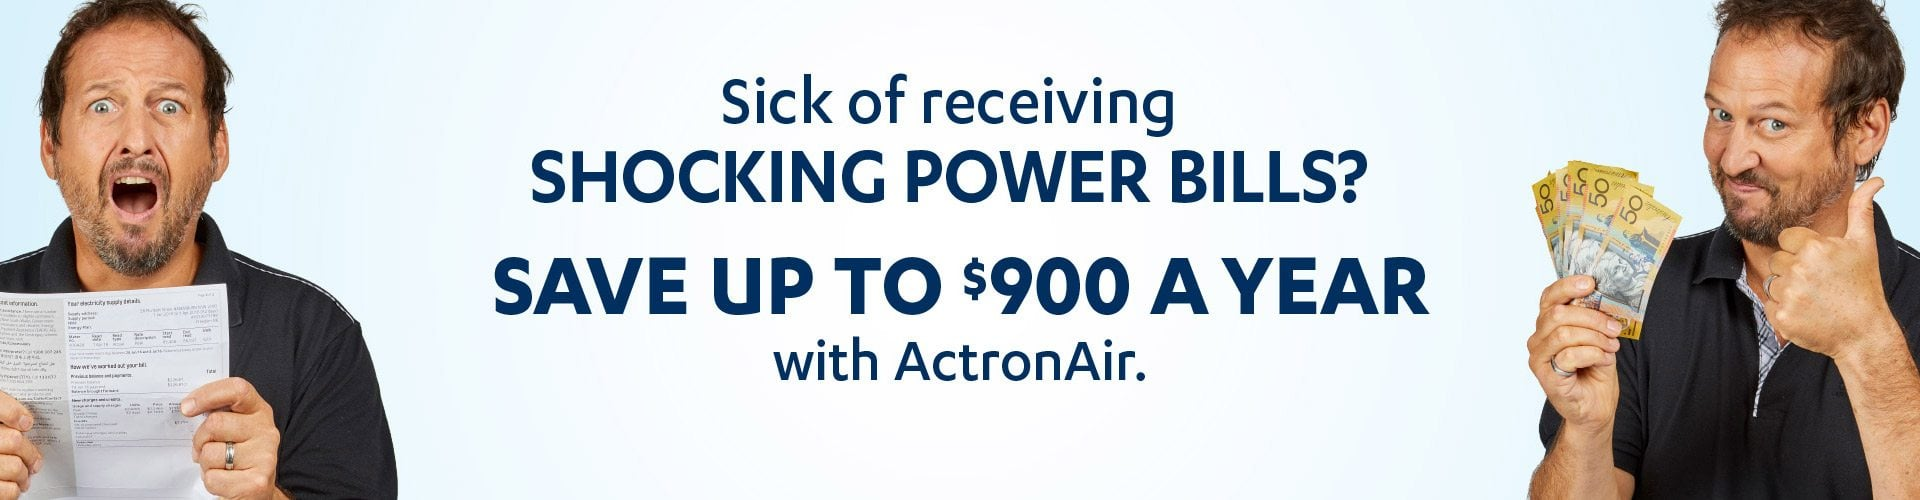 save up to $900 a year with actron air